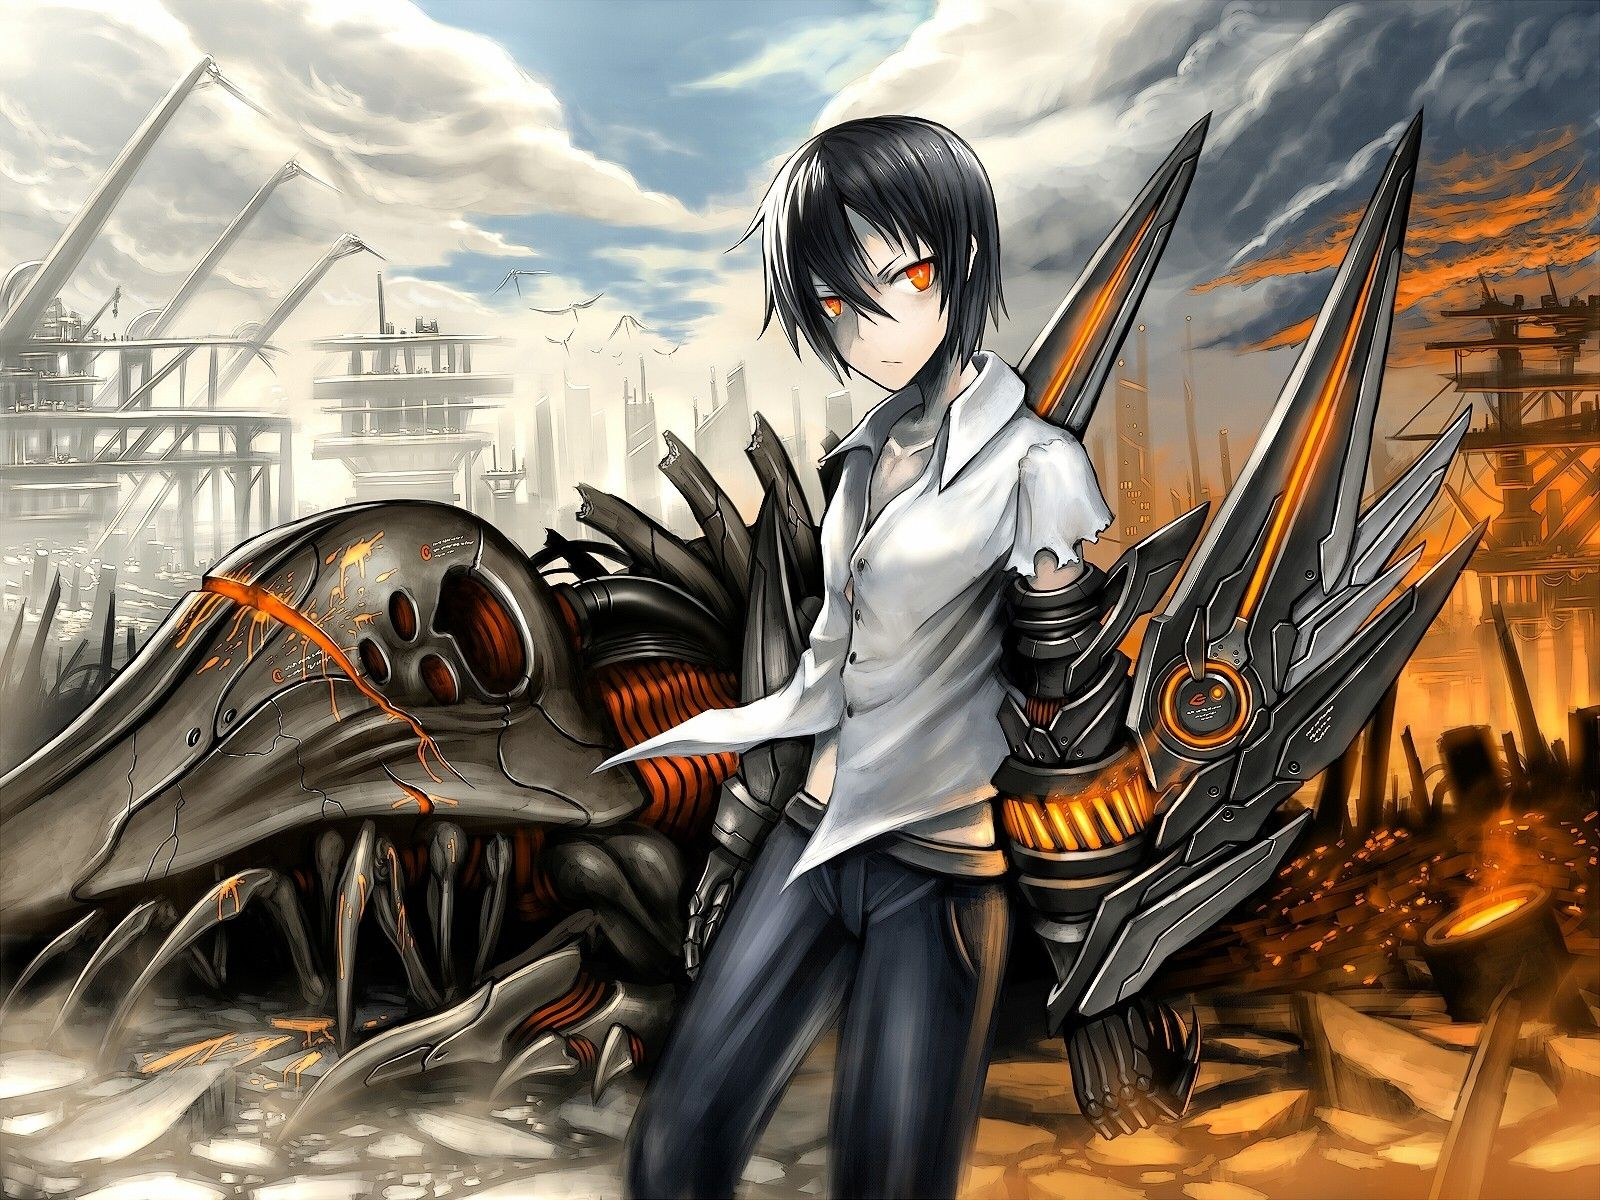 Cool Anime Boys With Black Hair And Eyes Wallpapers ...